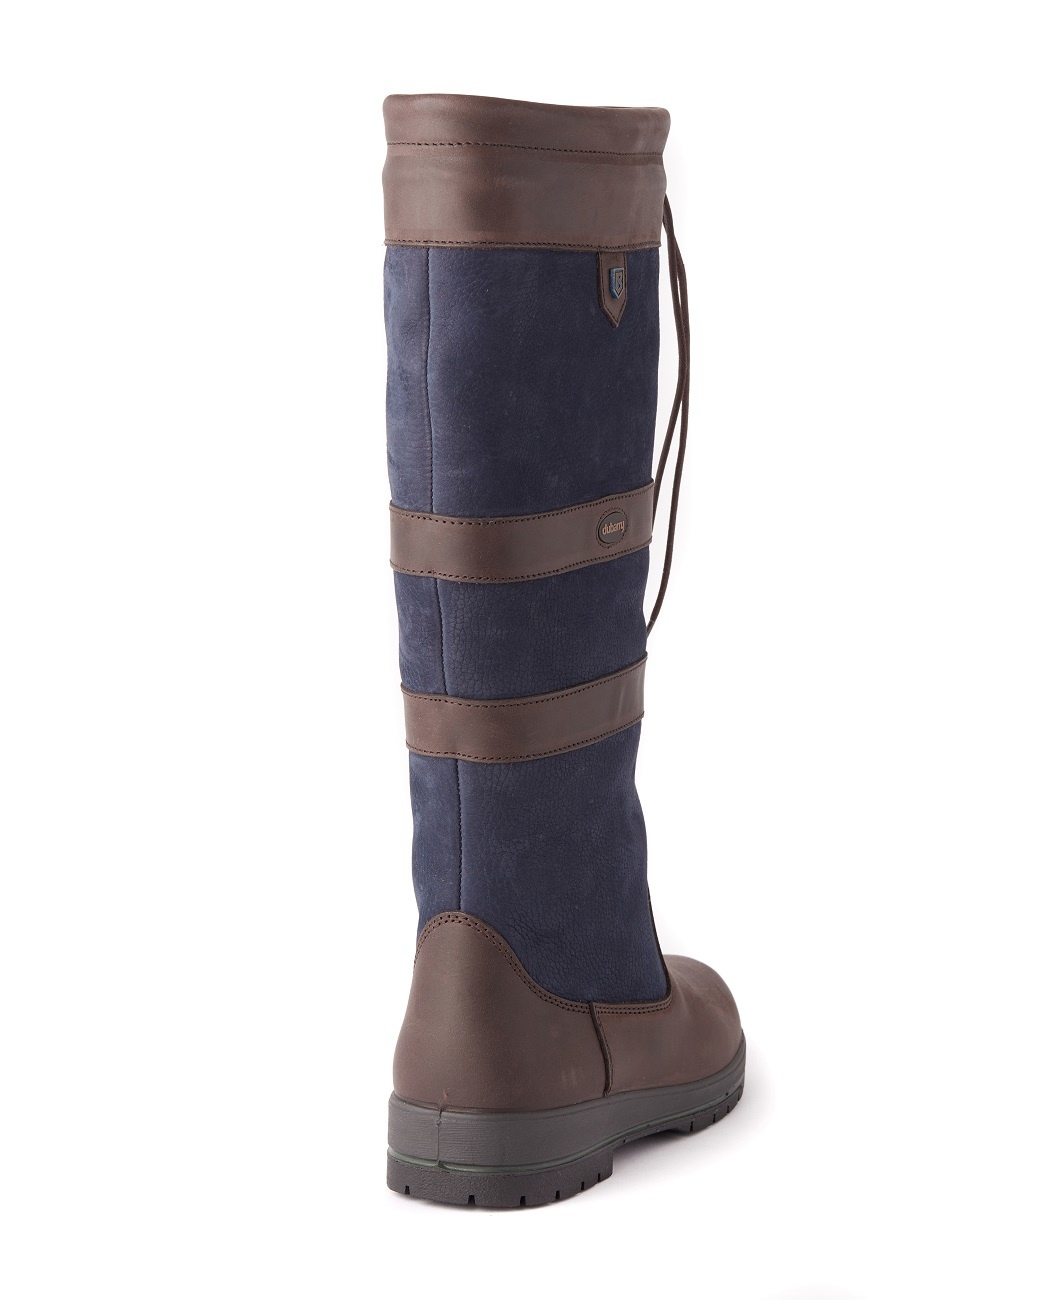 Dubarry Galway Extrafit™- Navy/Brown-3